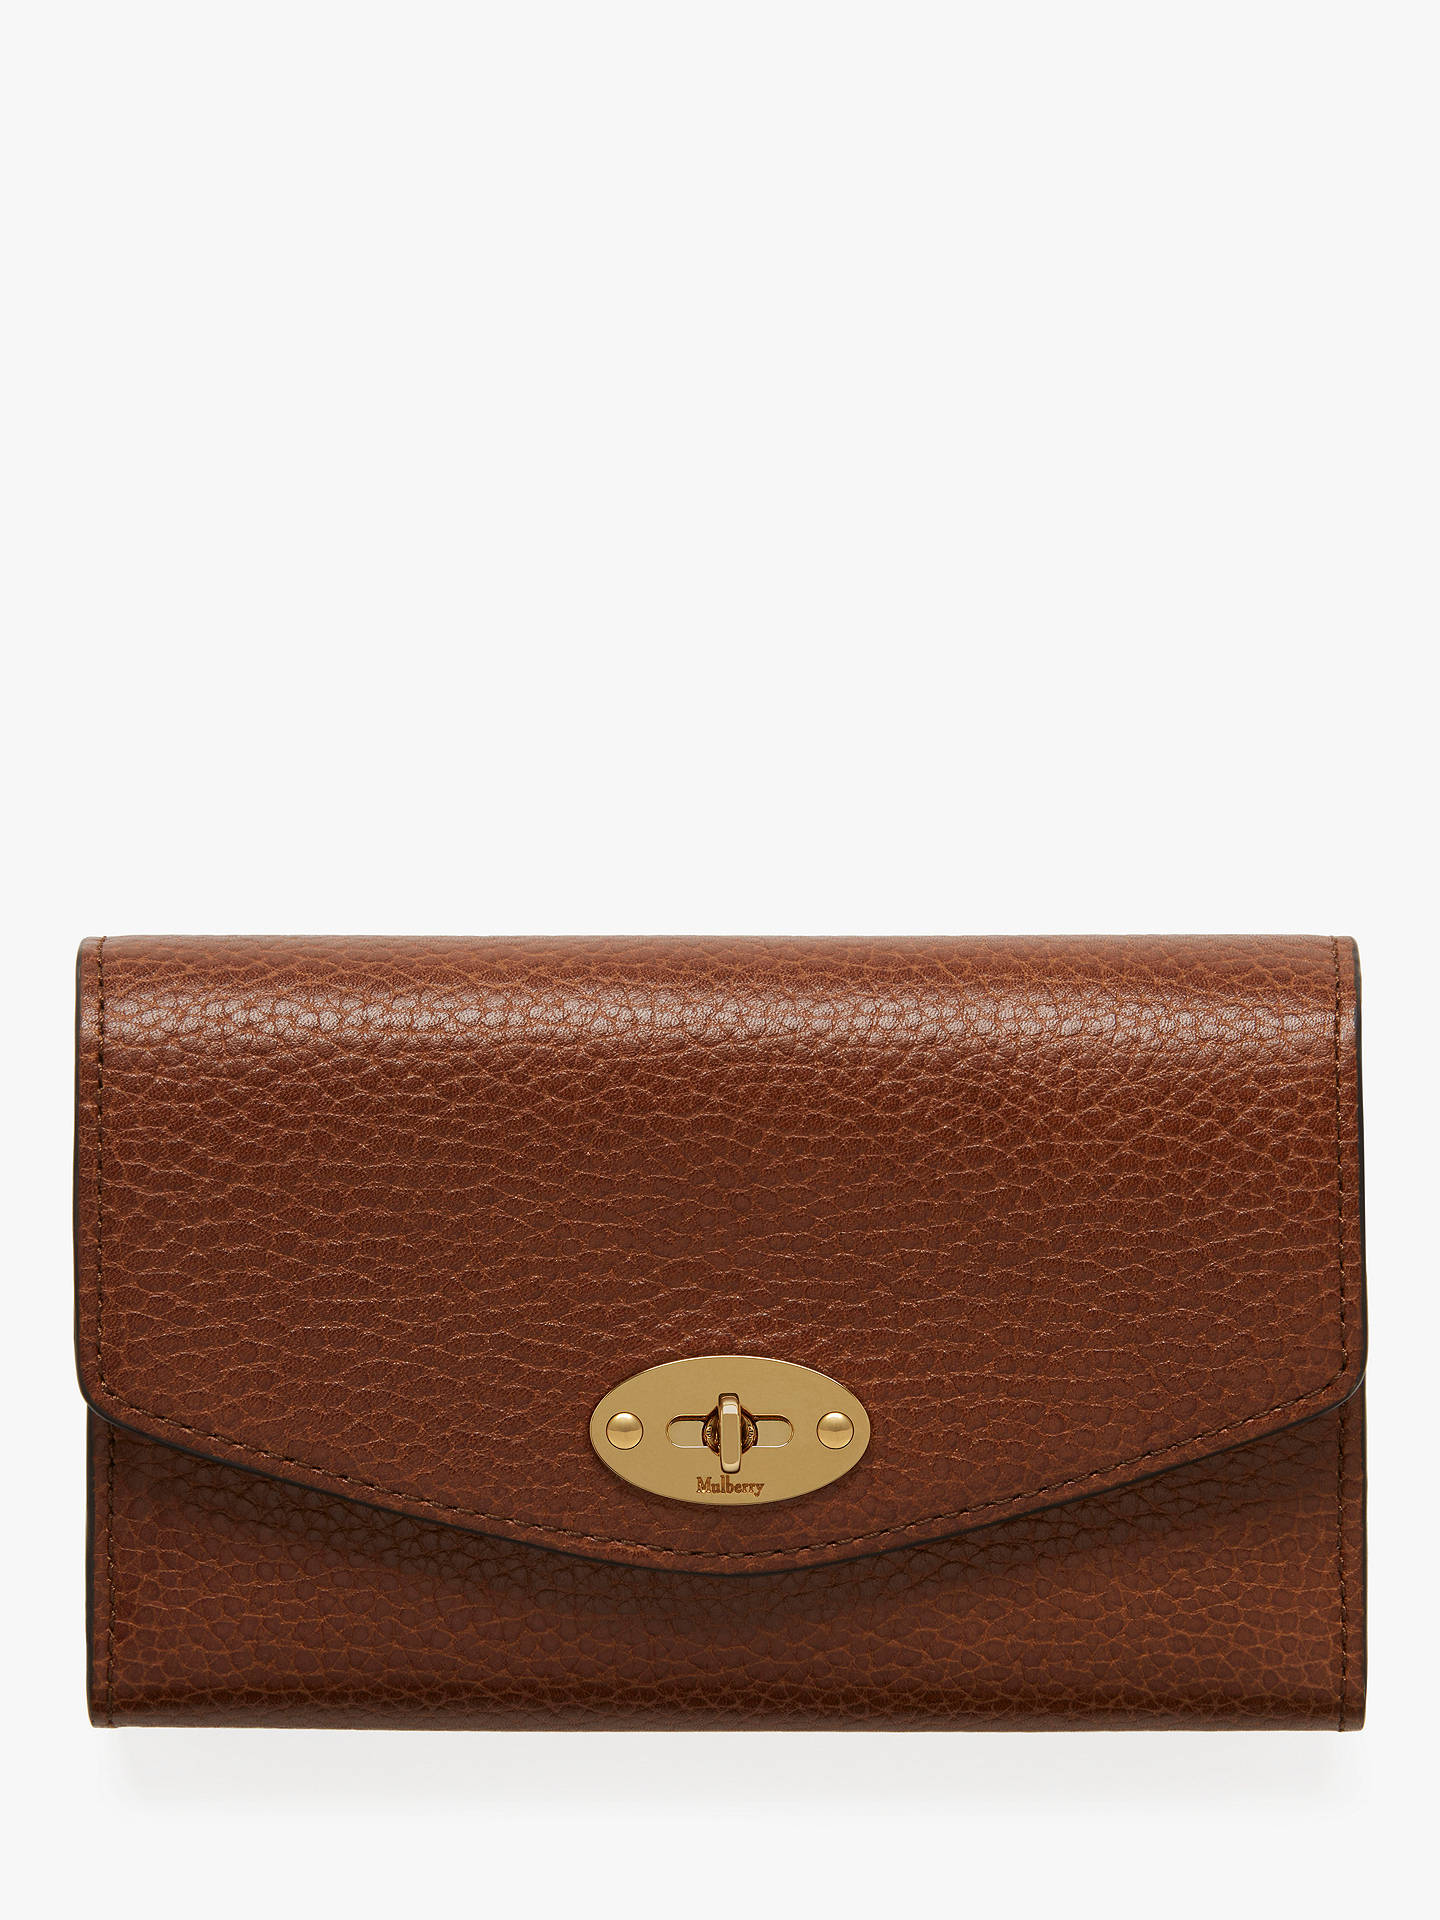 bc6a0beca291 Mulberry Darley Grain Veg Tanned Leather Medium Wallet at John Lewis ...